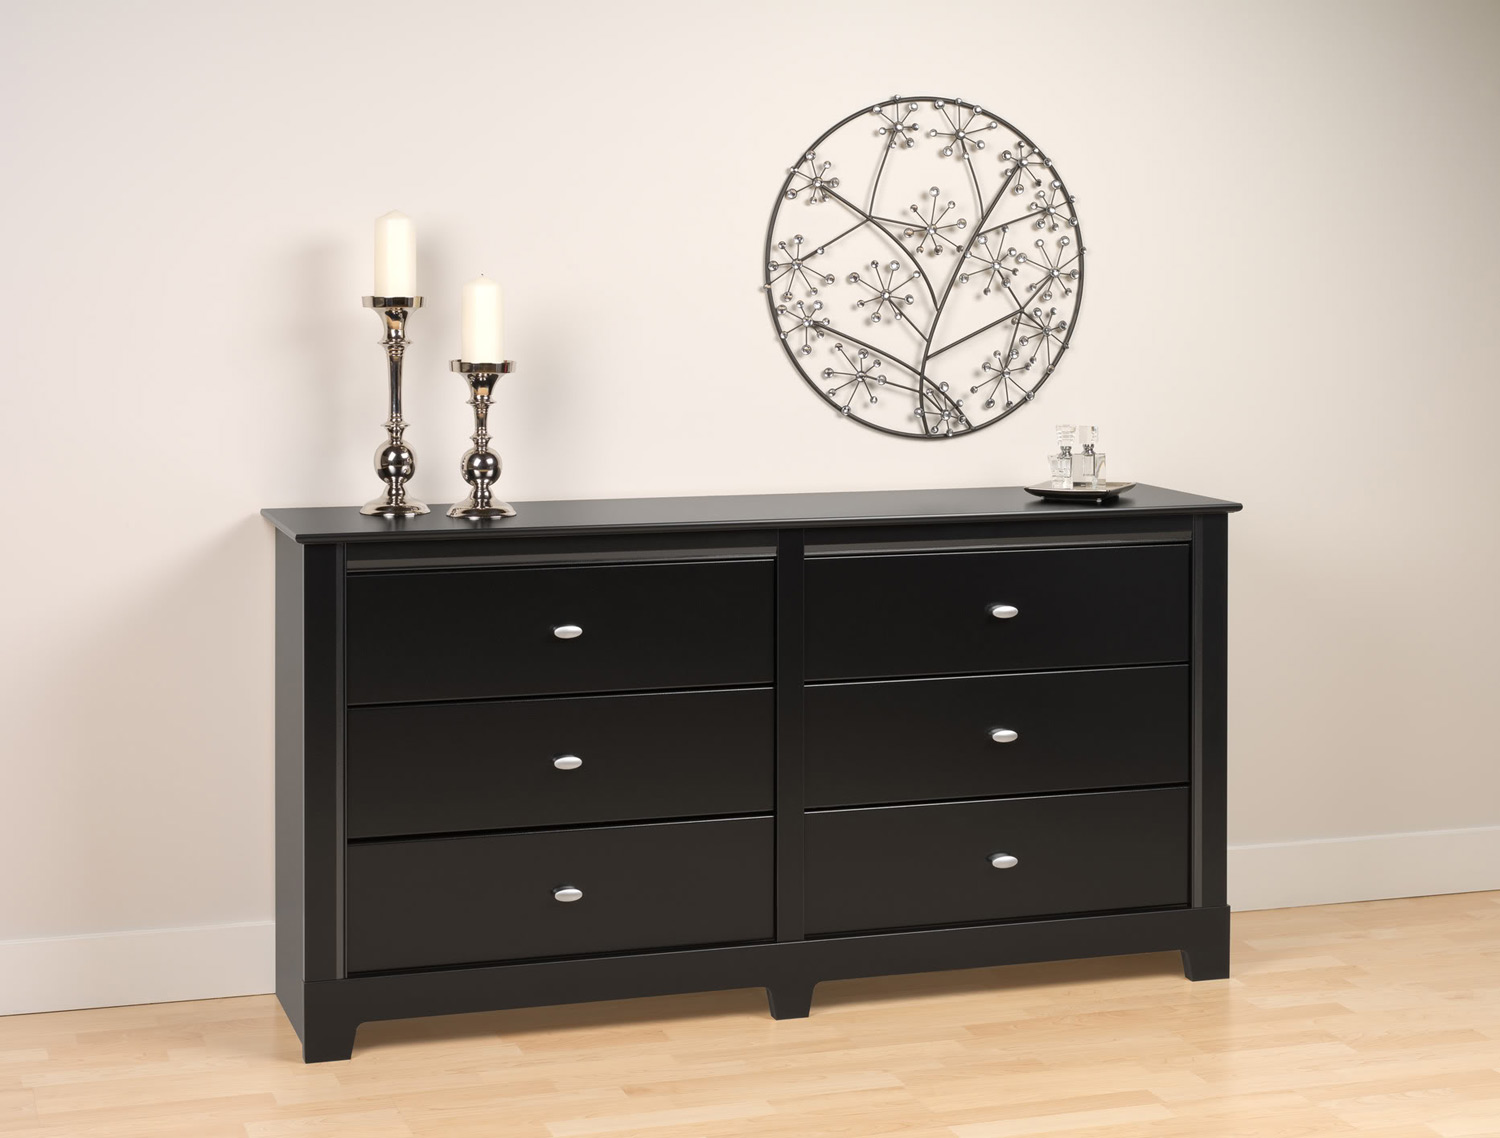 Prepac Kallisto 6 Drawer Dresser - Black